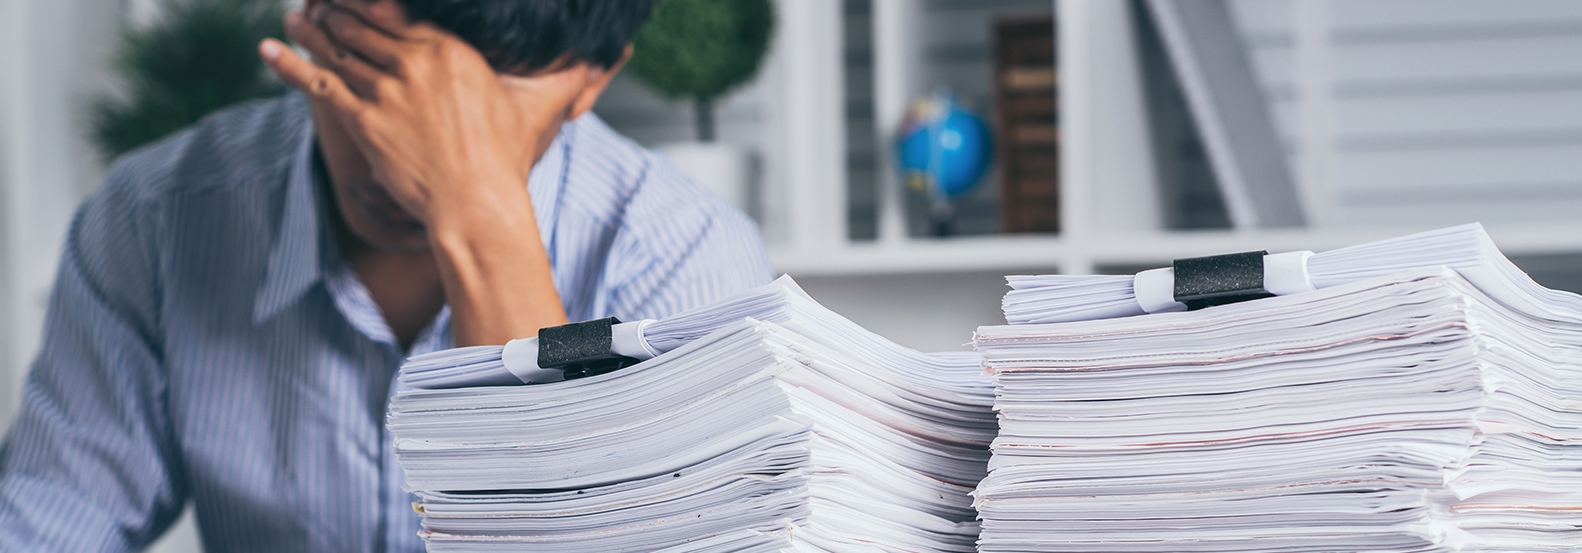 Man searching through stack of papers for mortgage release